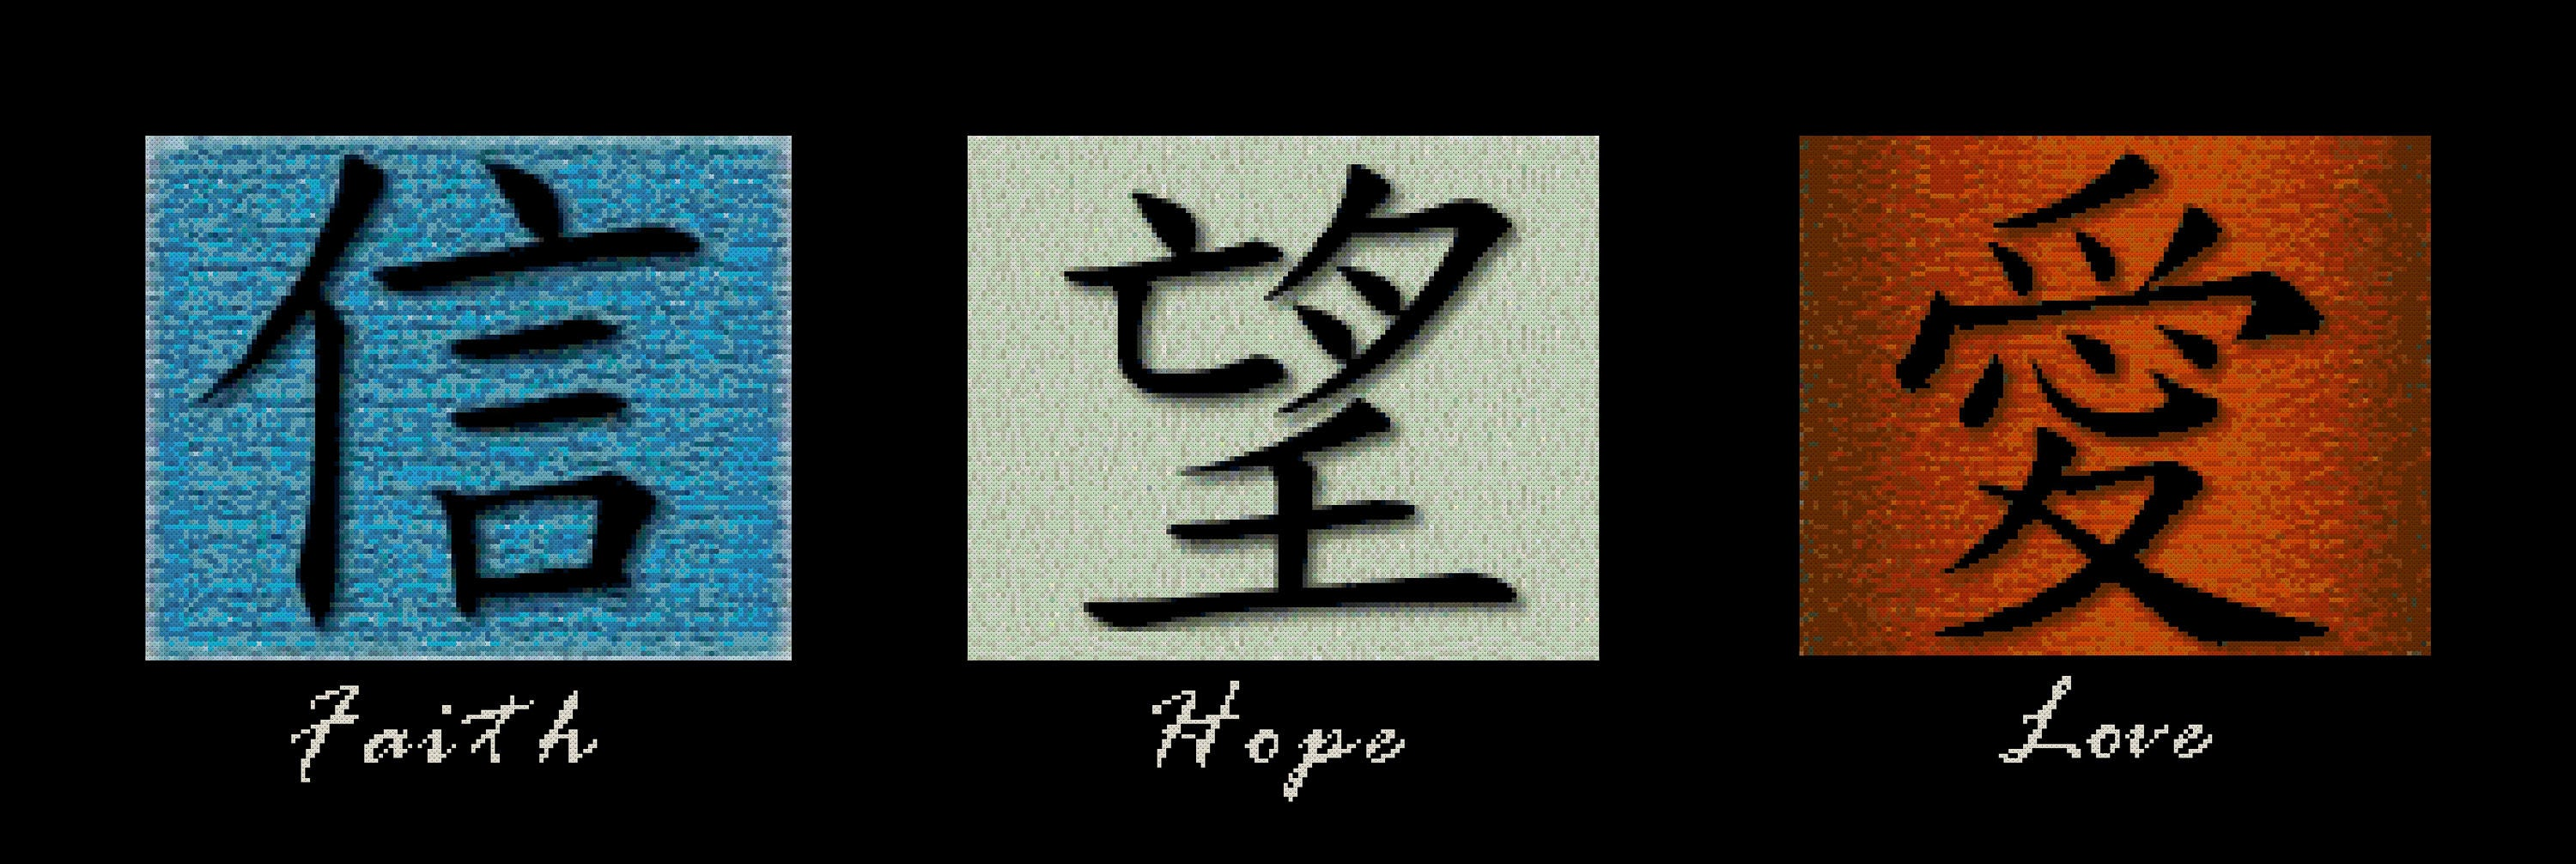 Chinese symbol panel faith hope love cross stitch pattern this is a digital file buycottarizona